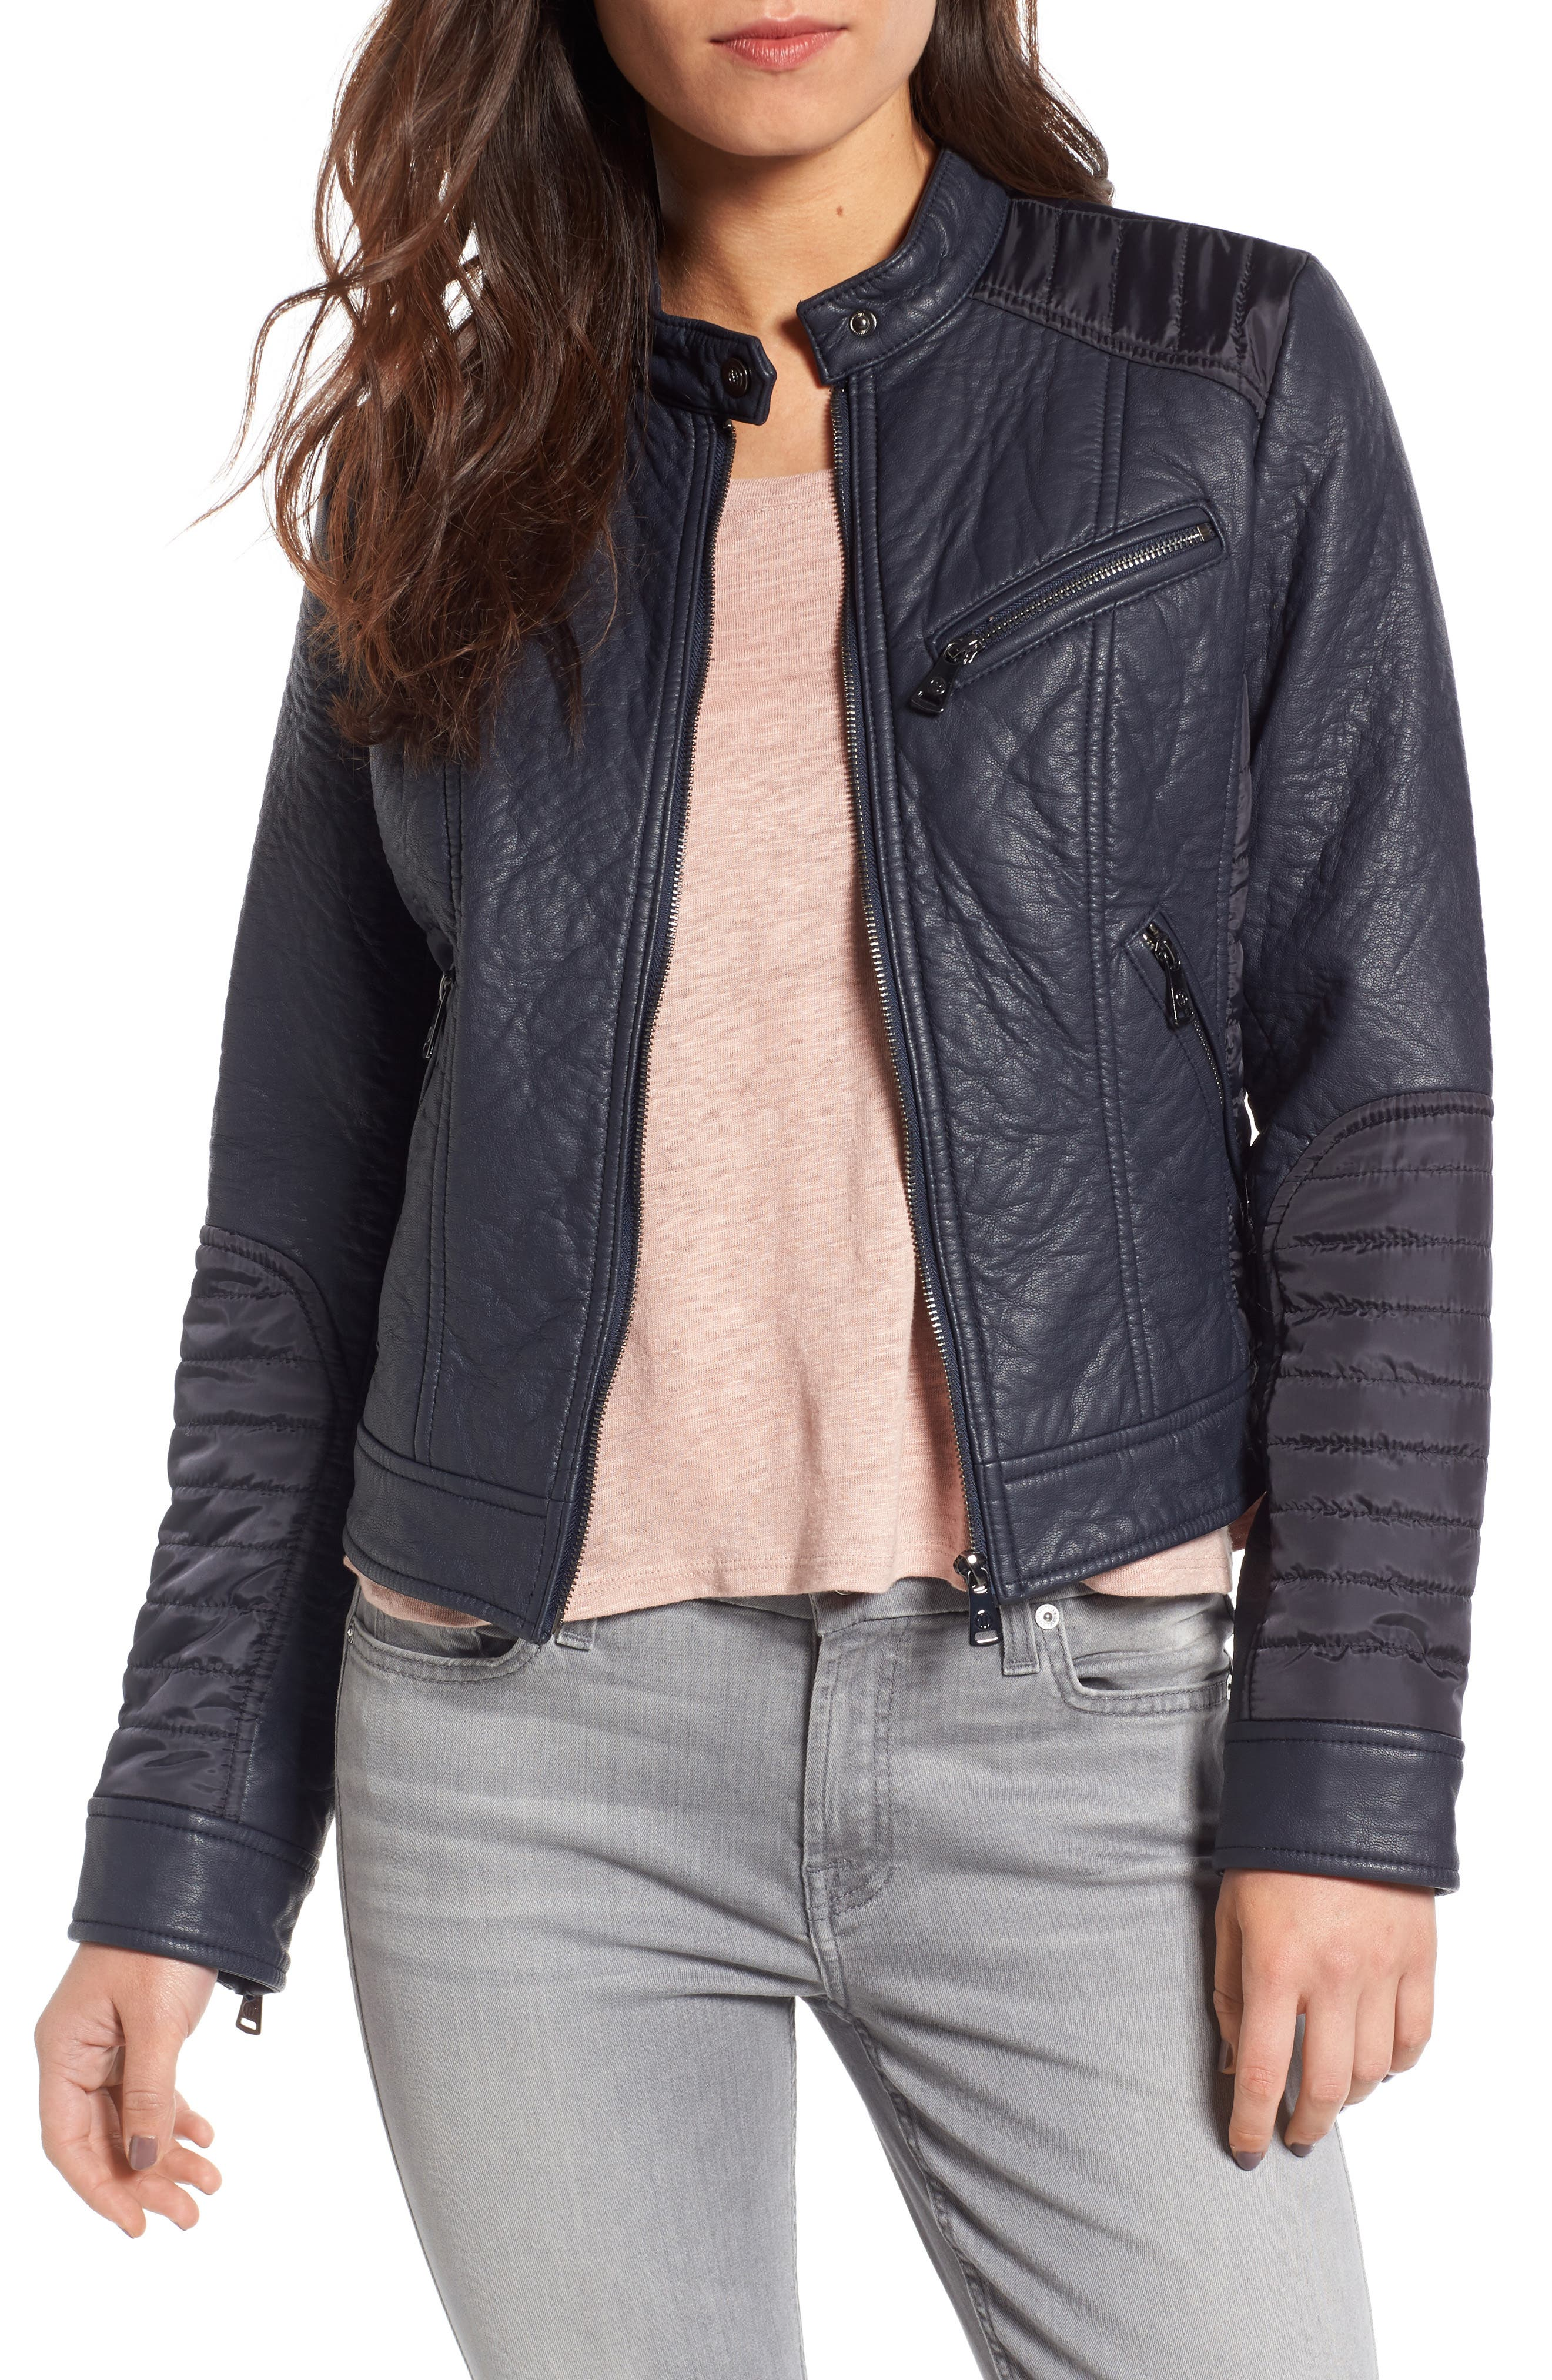 Bernardo Mixed Media Faux Leather Jacket